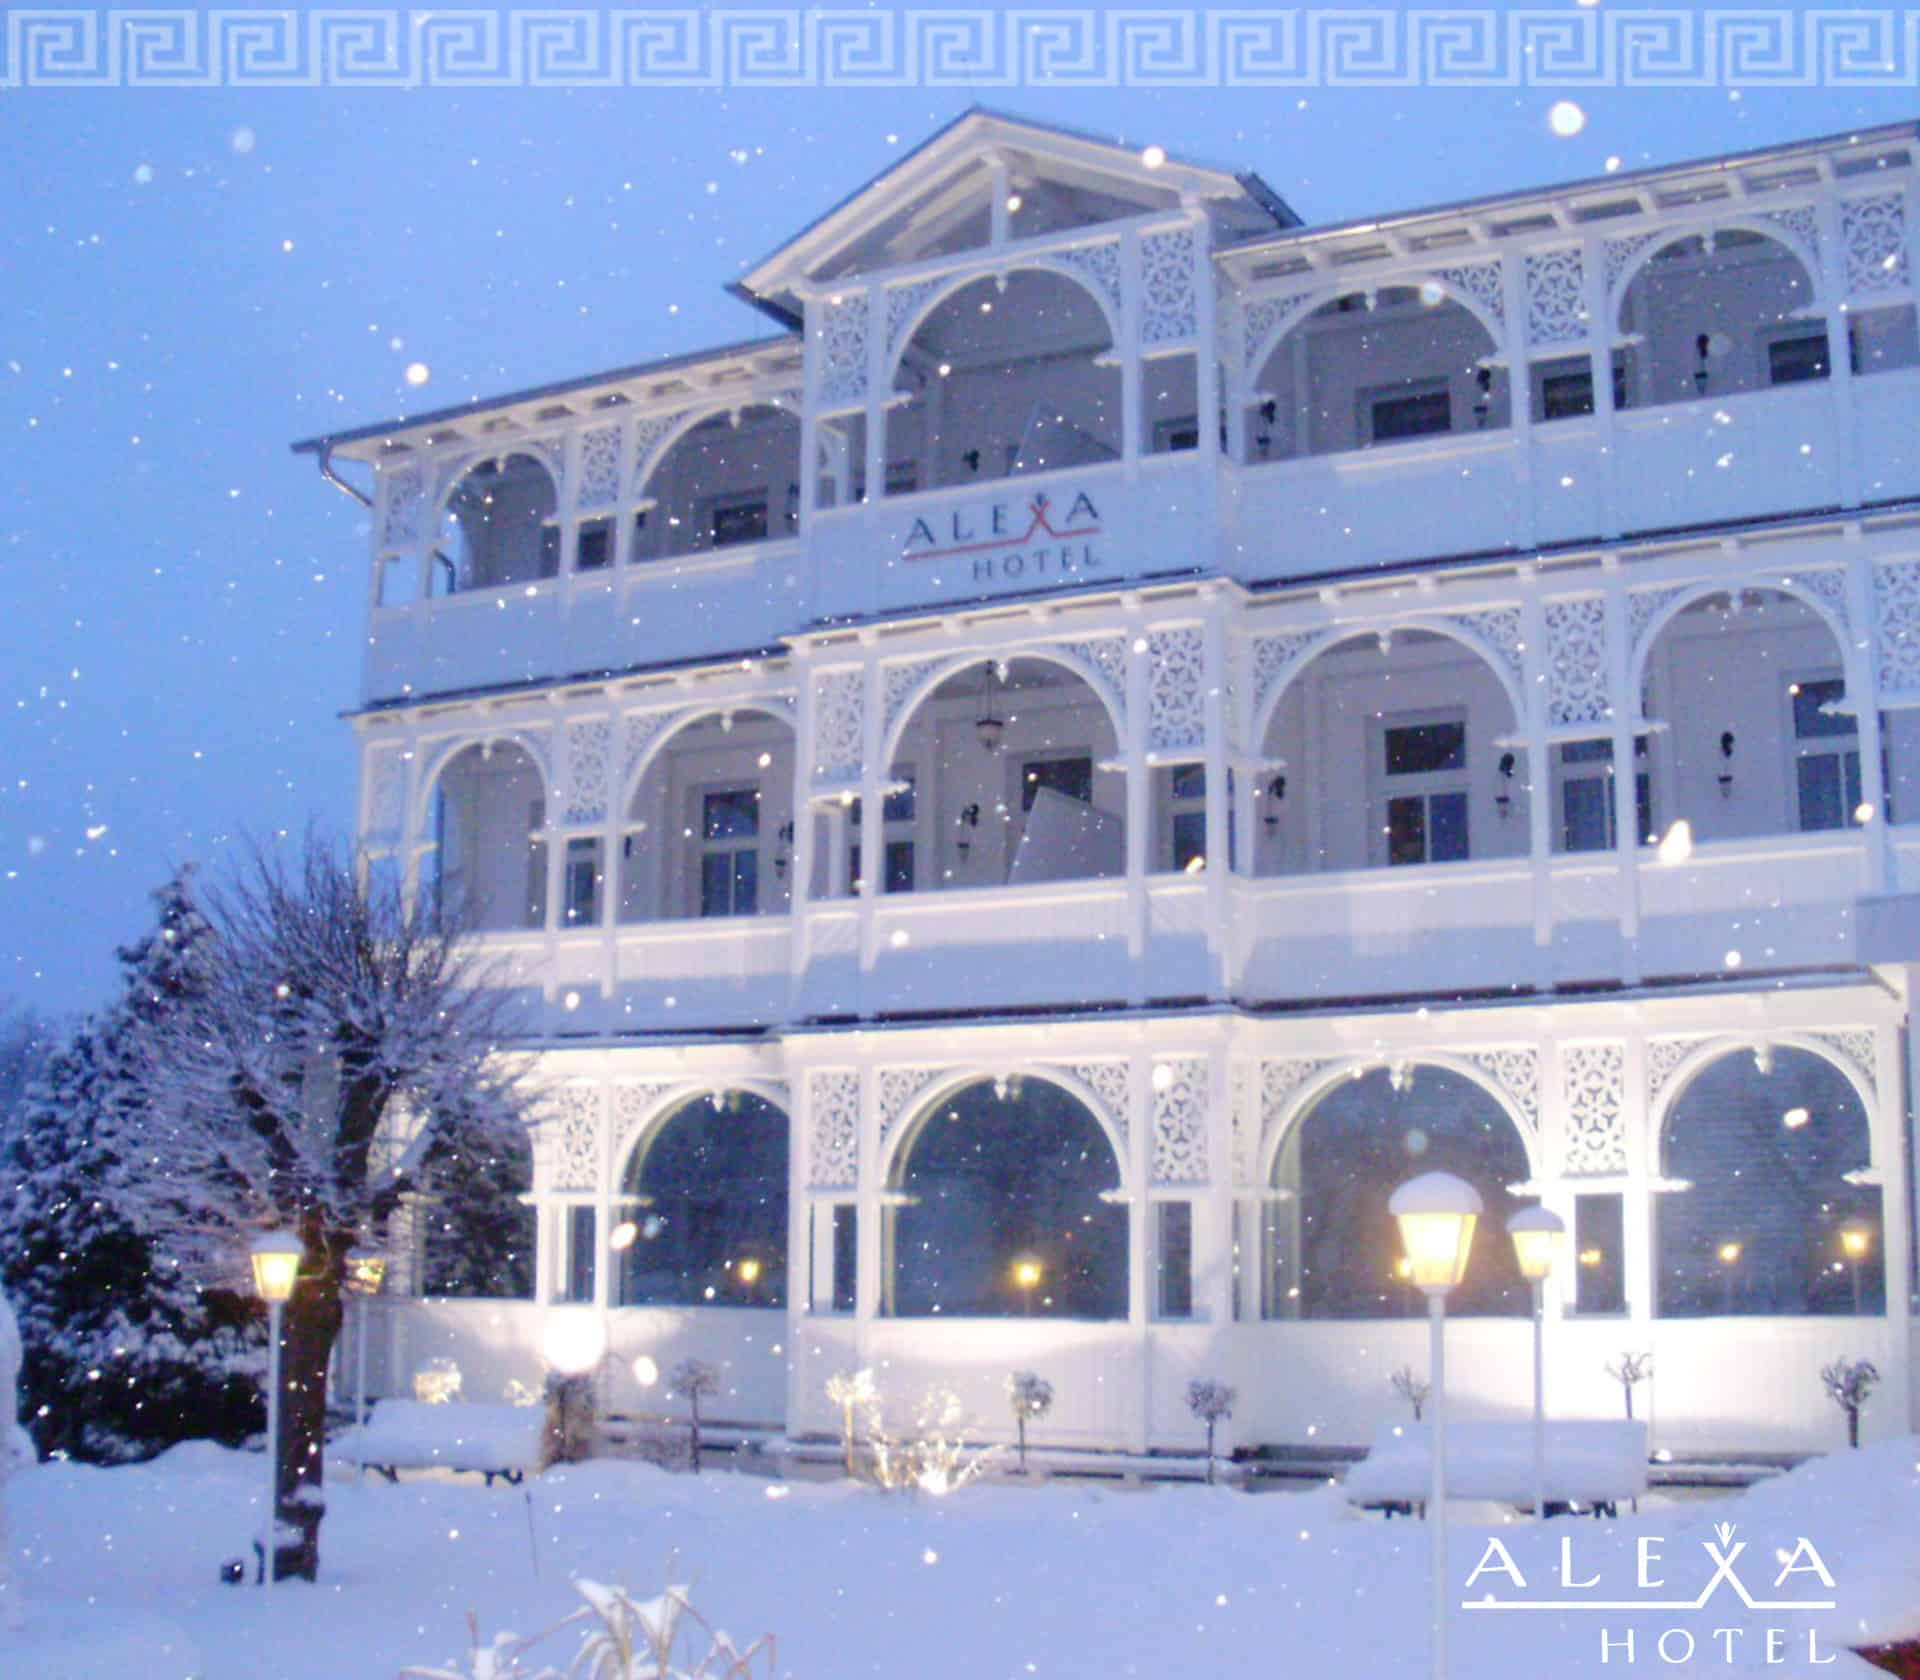 Alexa Hotel im Winter